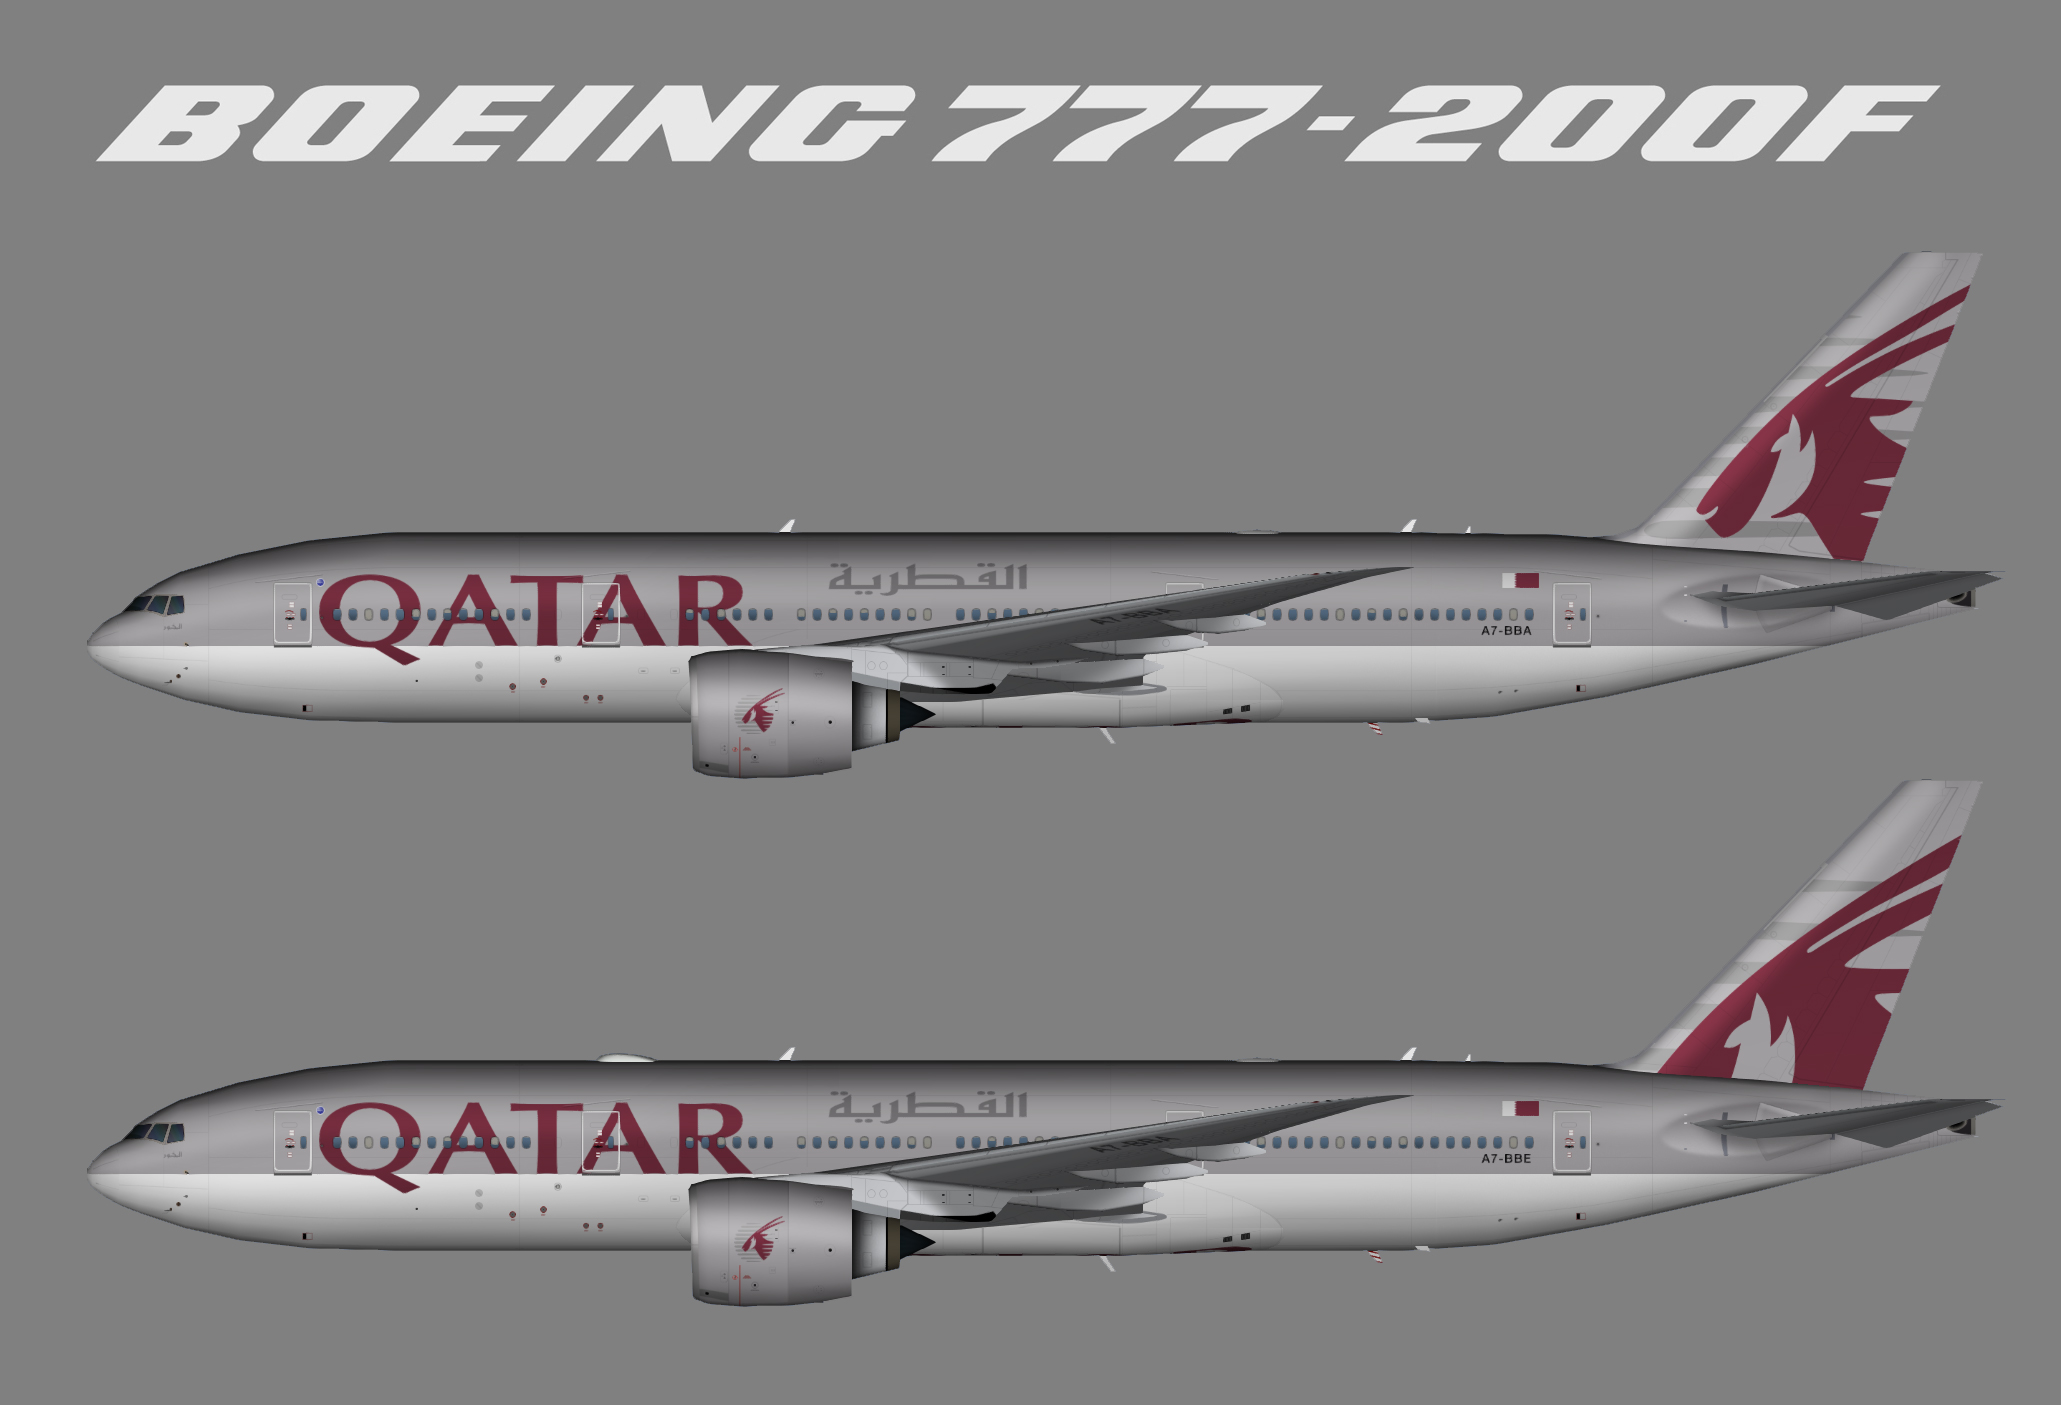 Qatar Airways Boeing 777-200LR